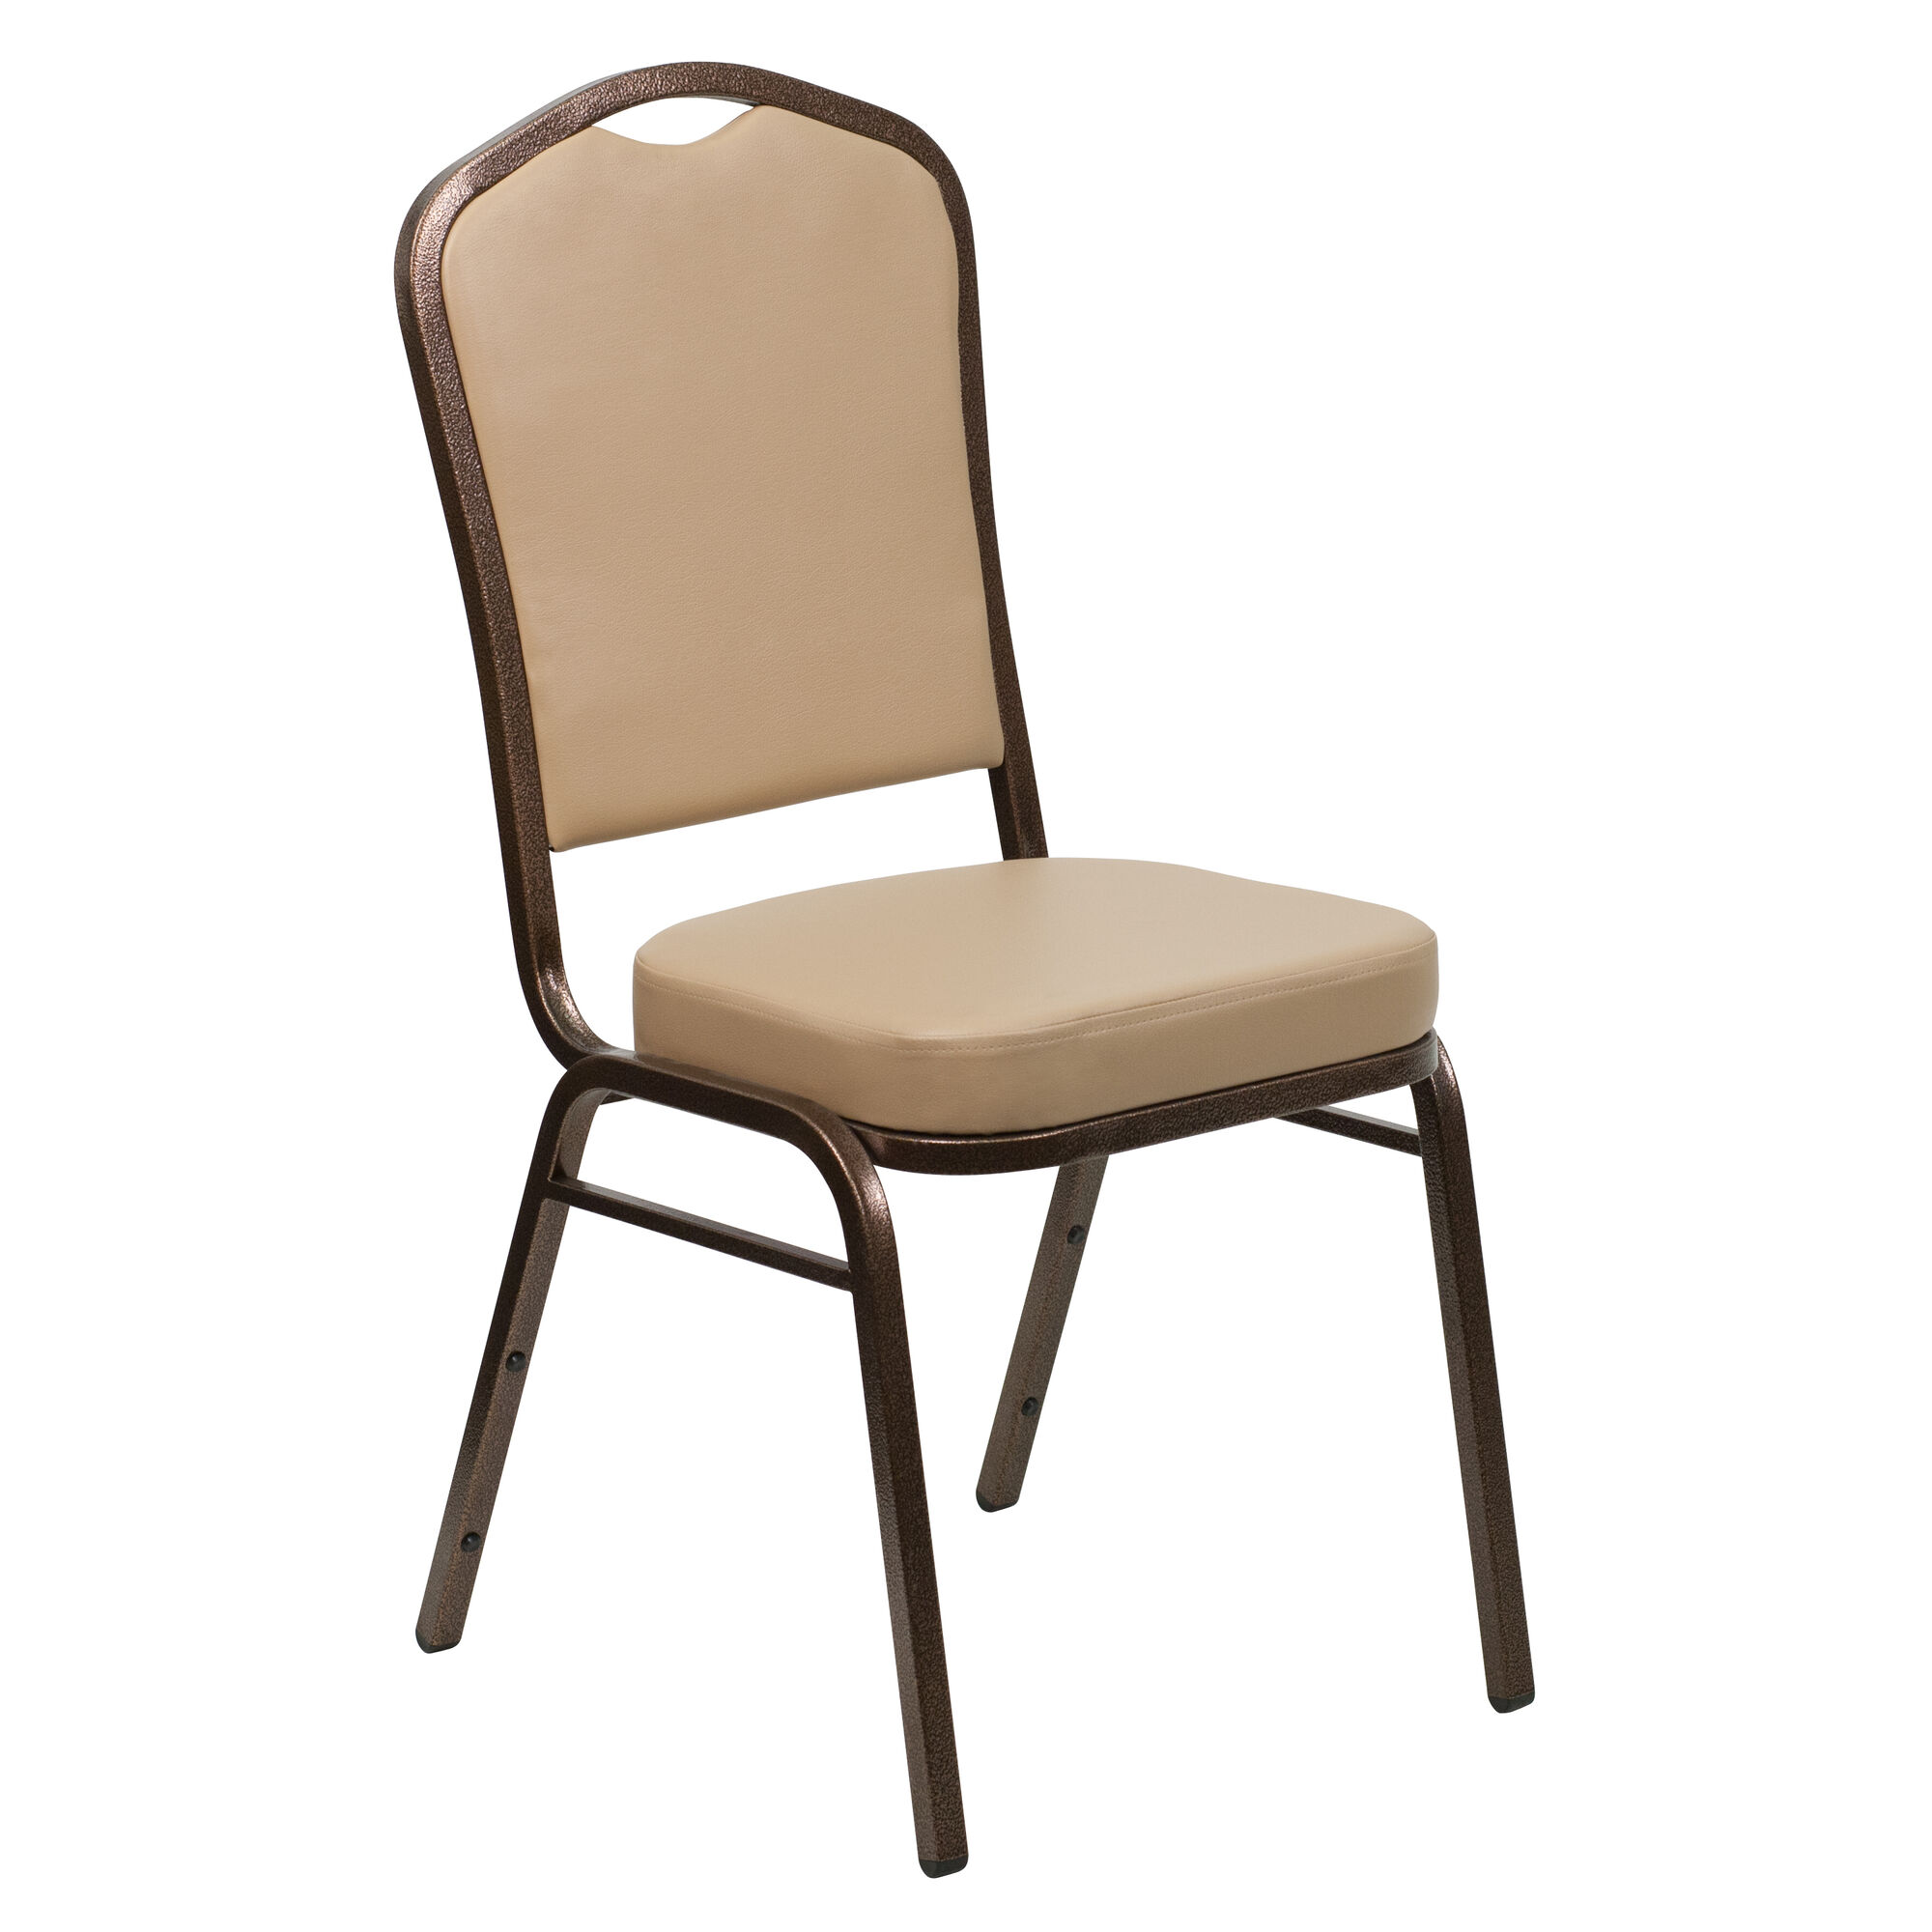 side furniture ling hotel chairs chair banquet steel